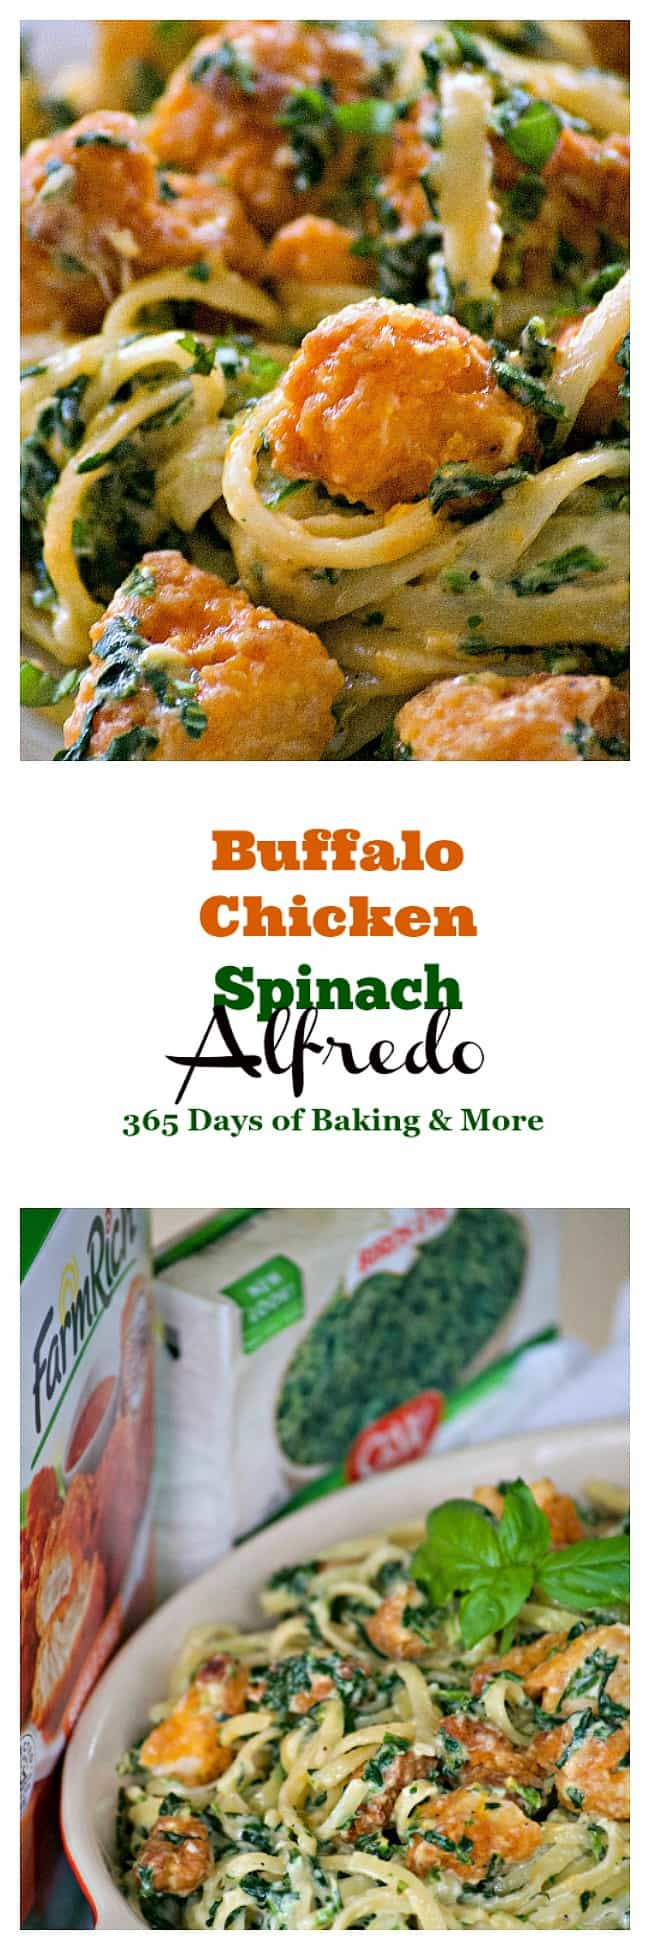 This Buffalo Chicken Spinach Alfredo with Buffalo chicken, chopped spinach, pasta and a homemade Alfredo sauce is an easy dinner that the family will love.